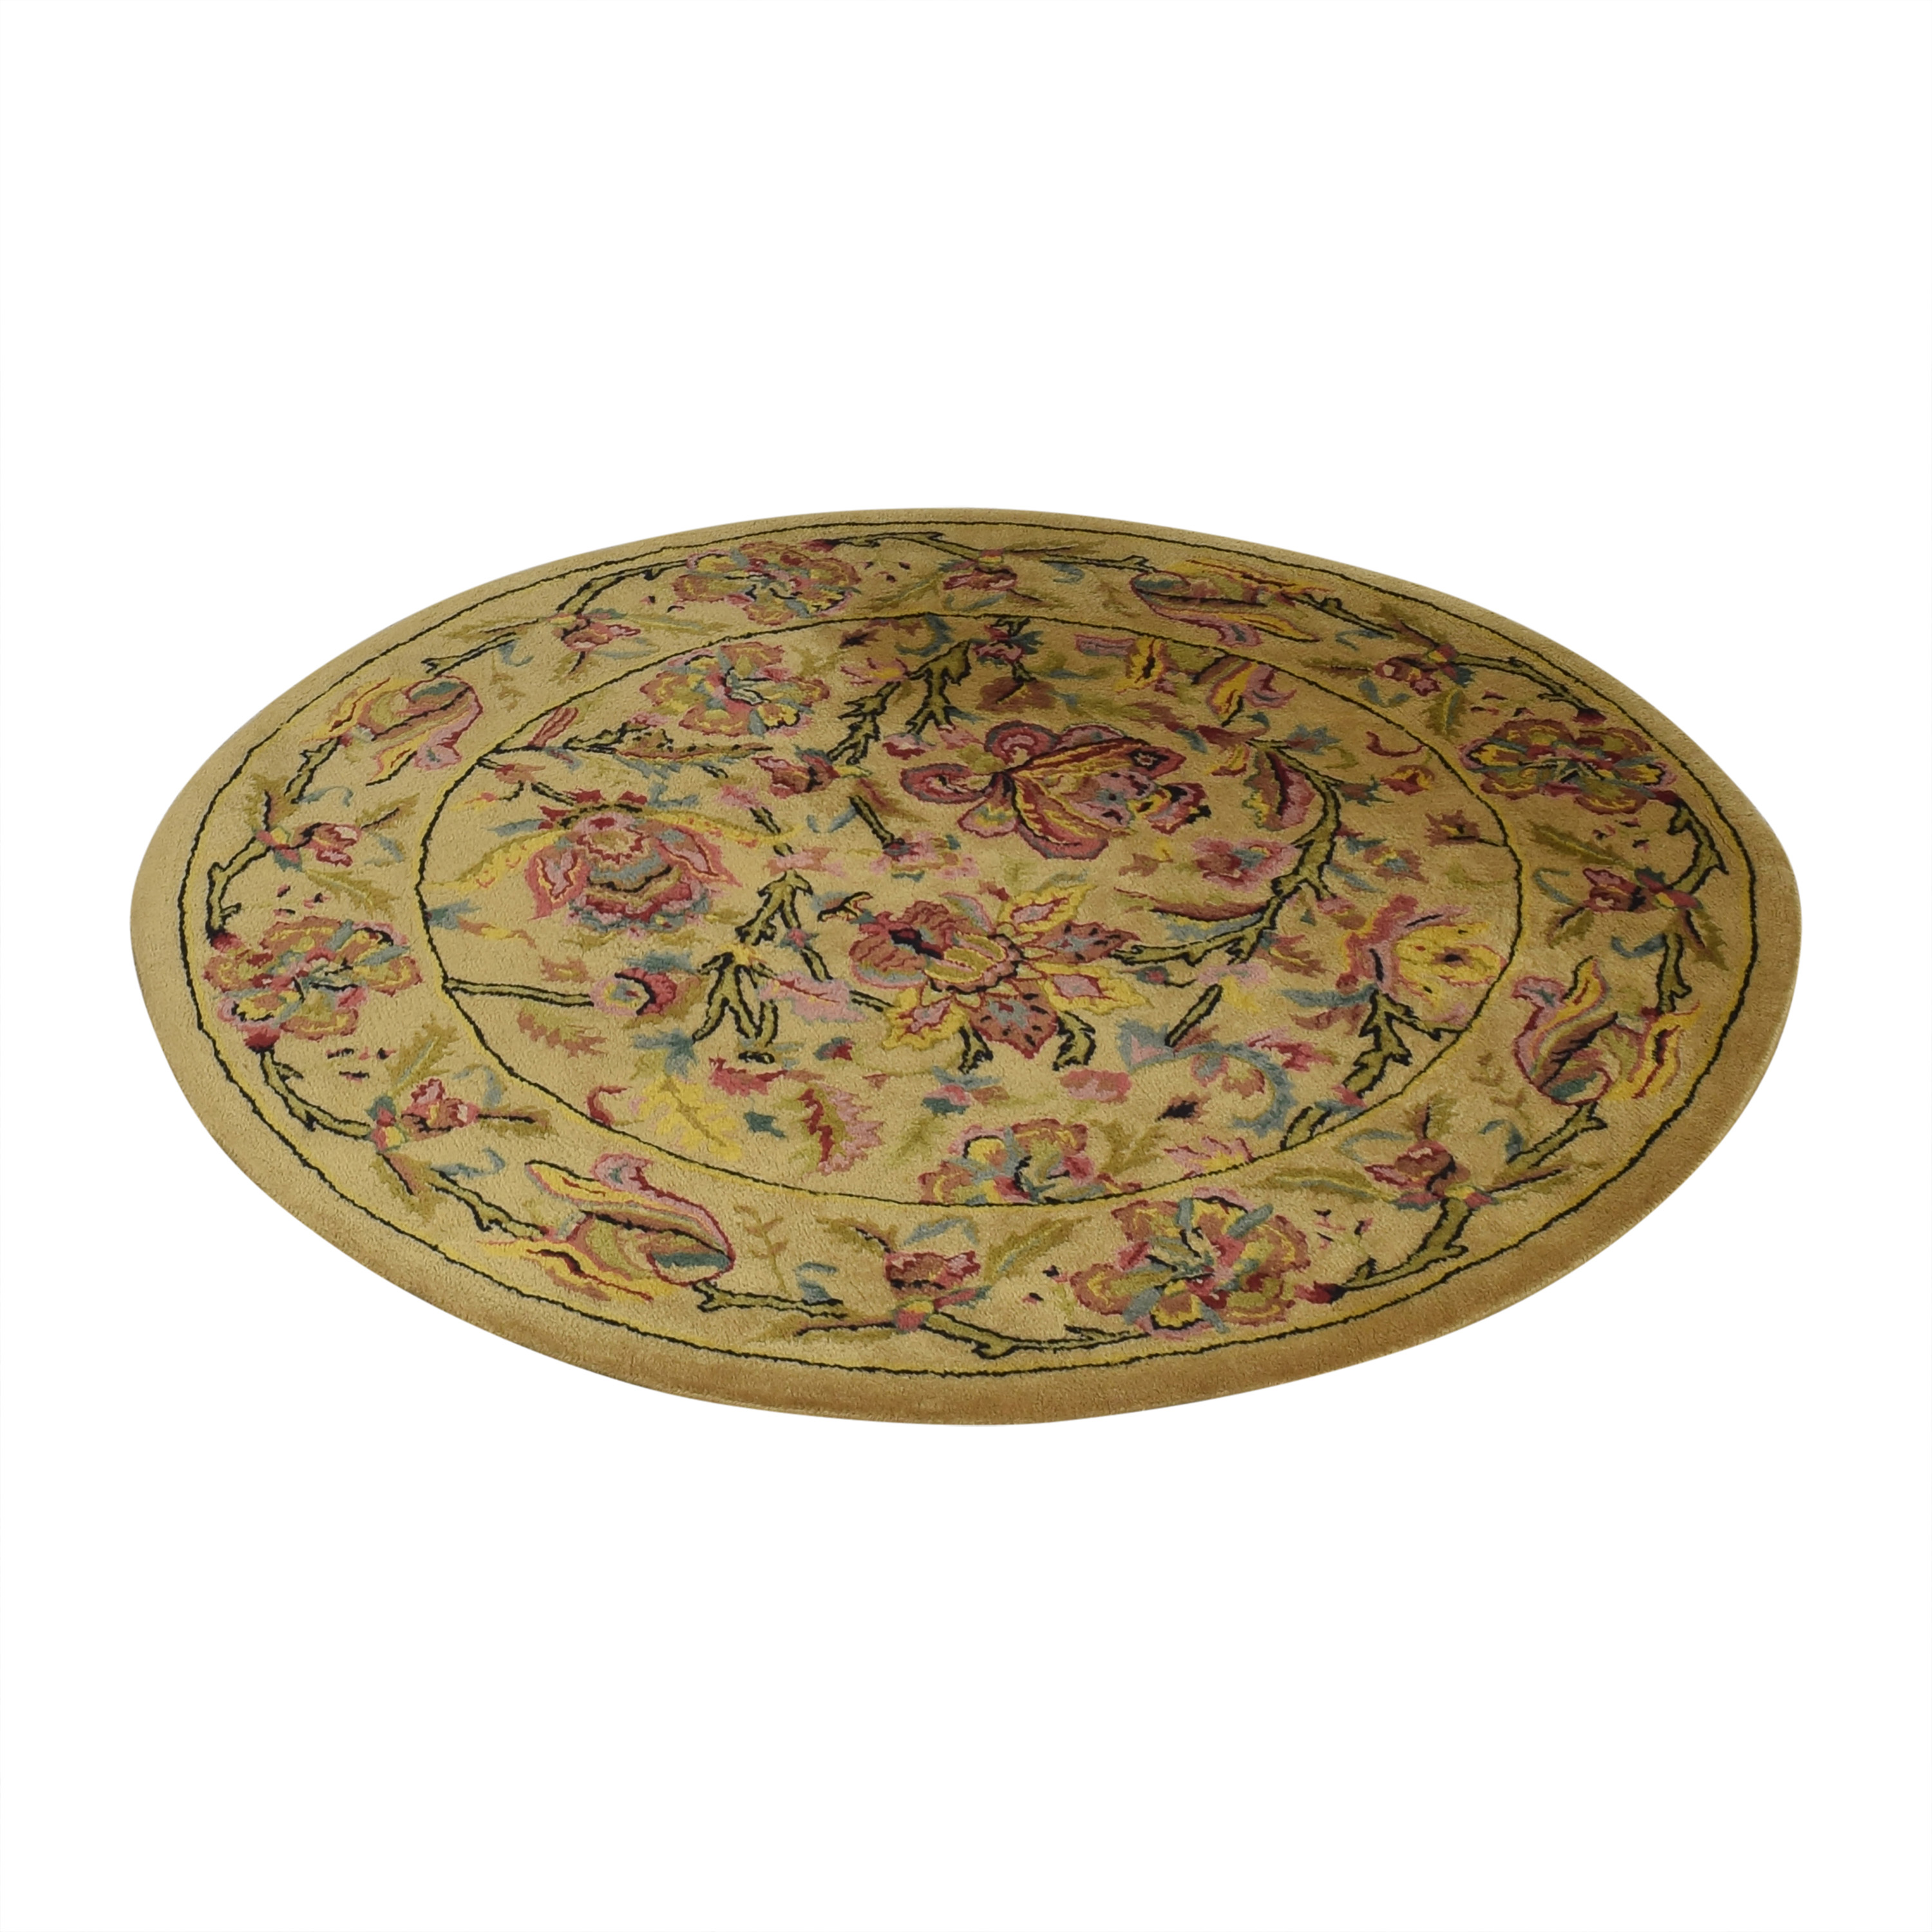 Patterned Round Rug ma